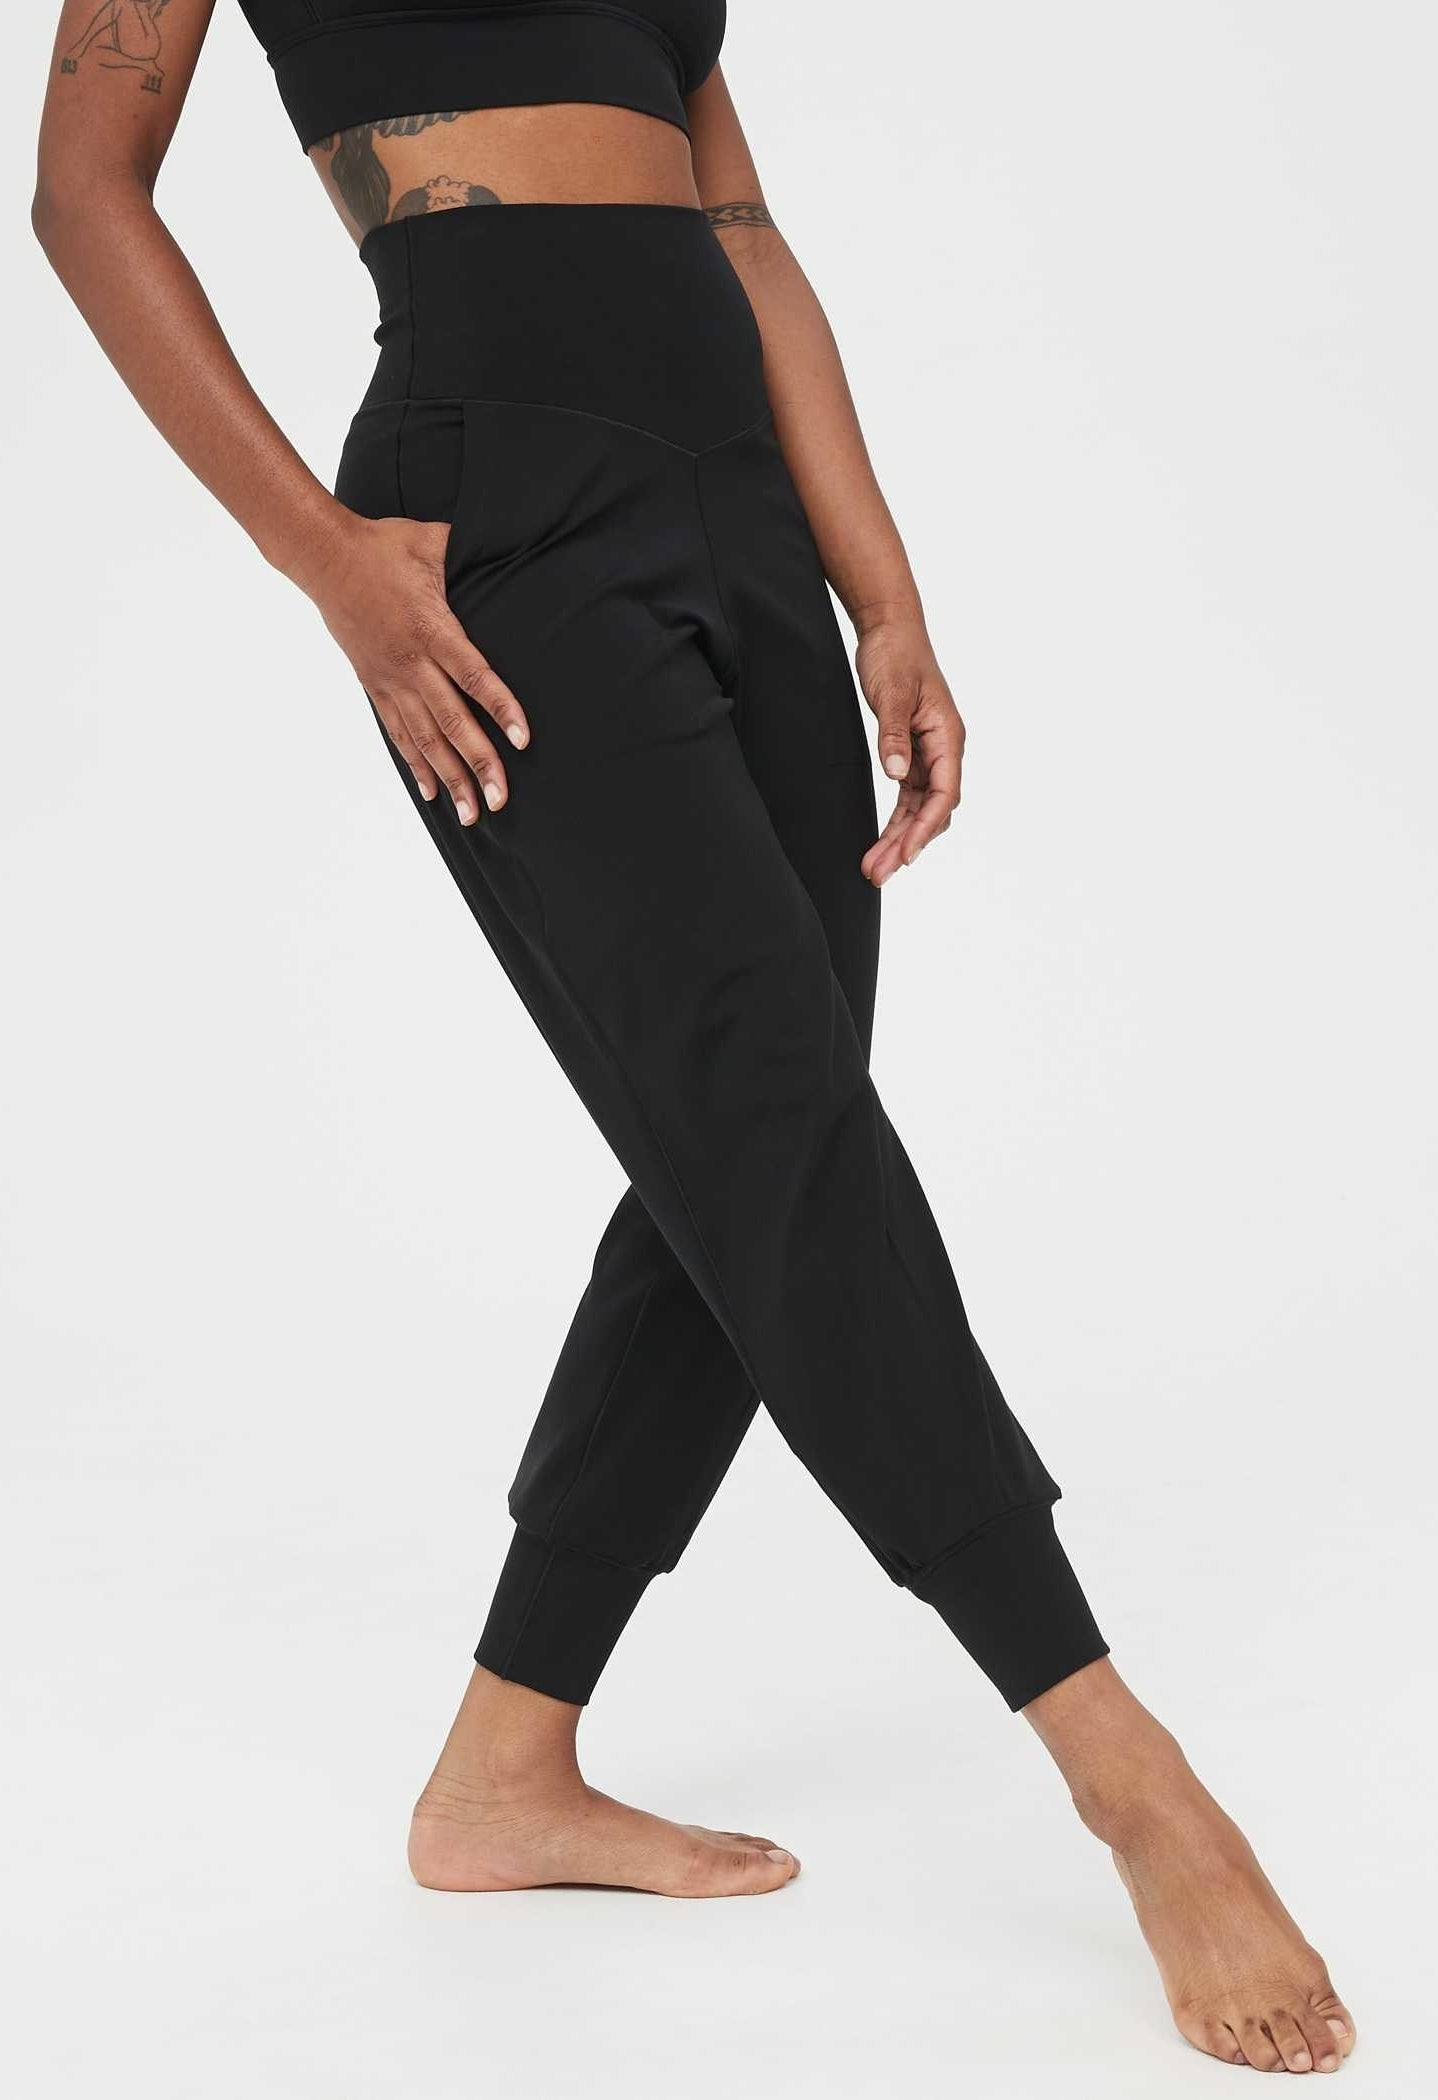 Model wearing the high-waisted joggers in black